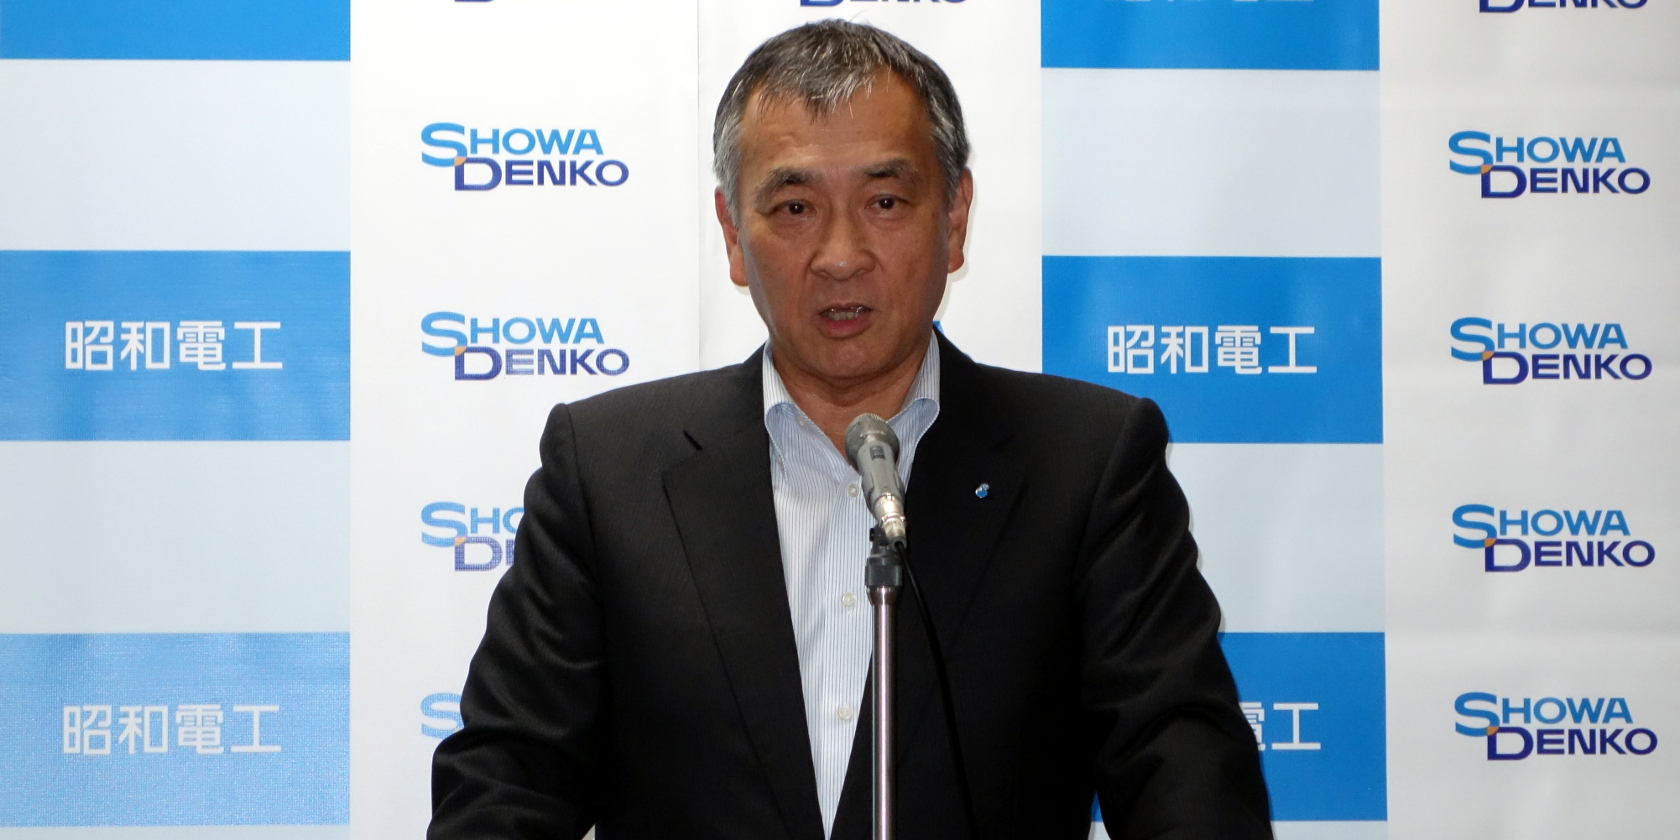 Showa Denko Gears up for Aggressive Growth Investment Over 2019–2021